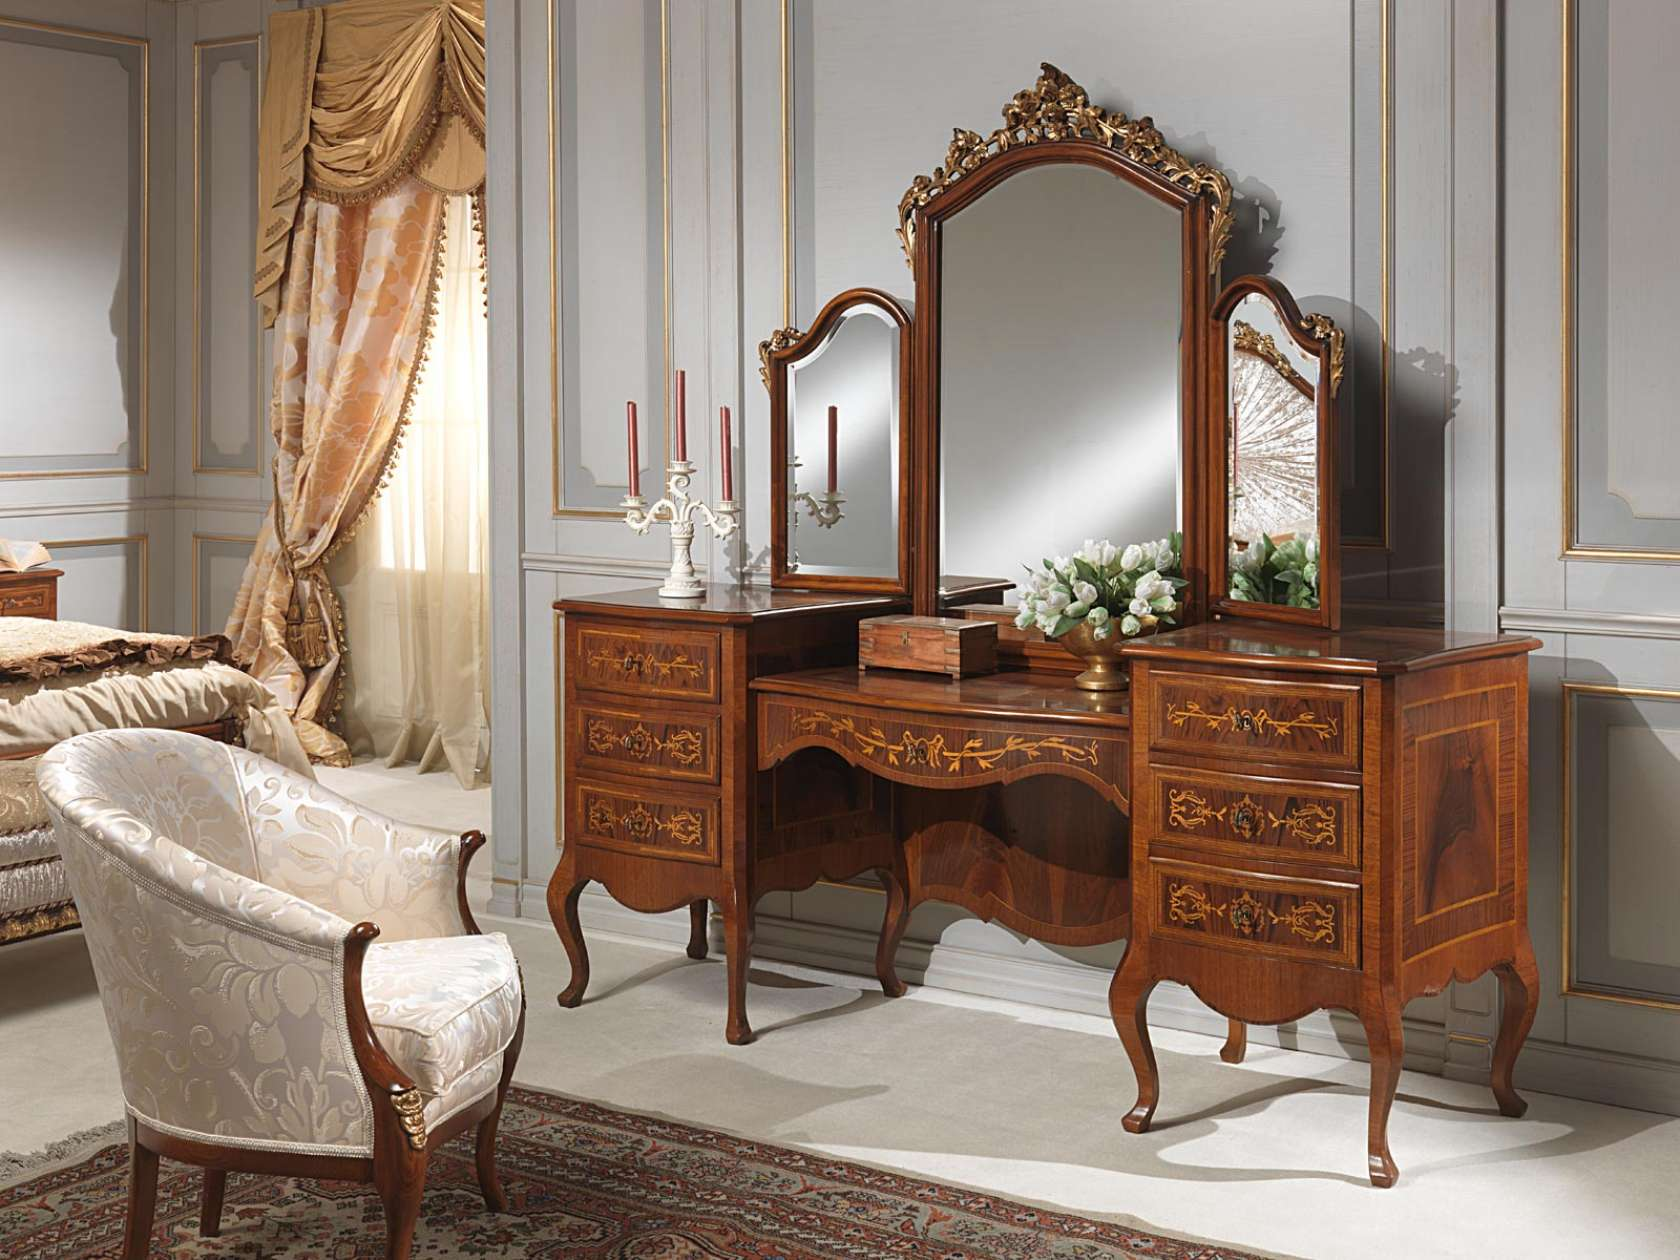 Classic Louvre bedroom dressing table with mirror  : 54 from www.vimercatimeda.com size 1680 x 1260 jpeg 206kB